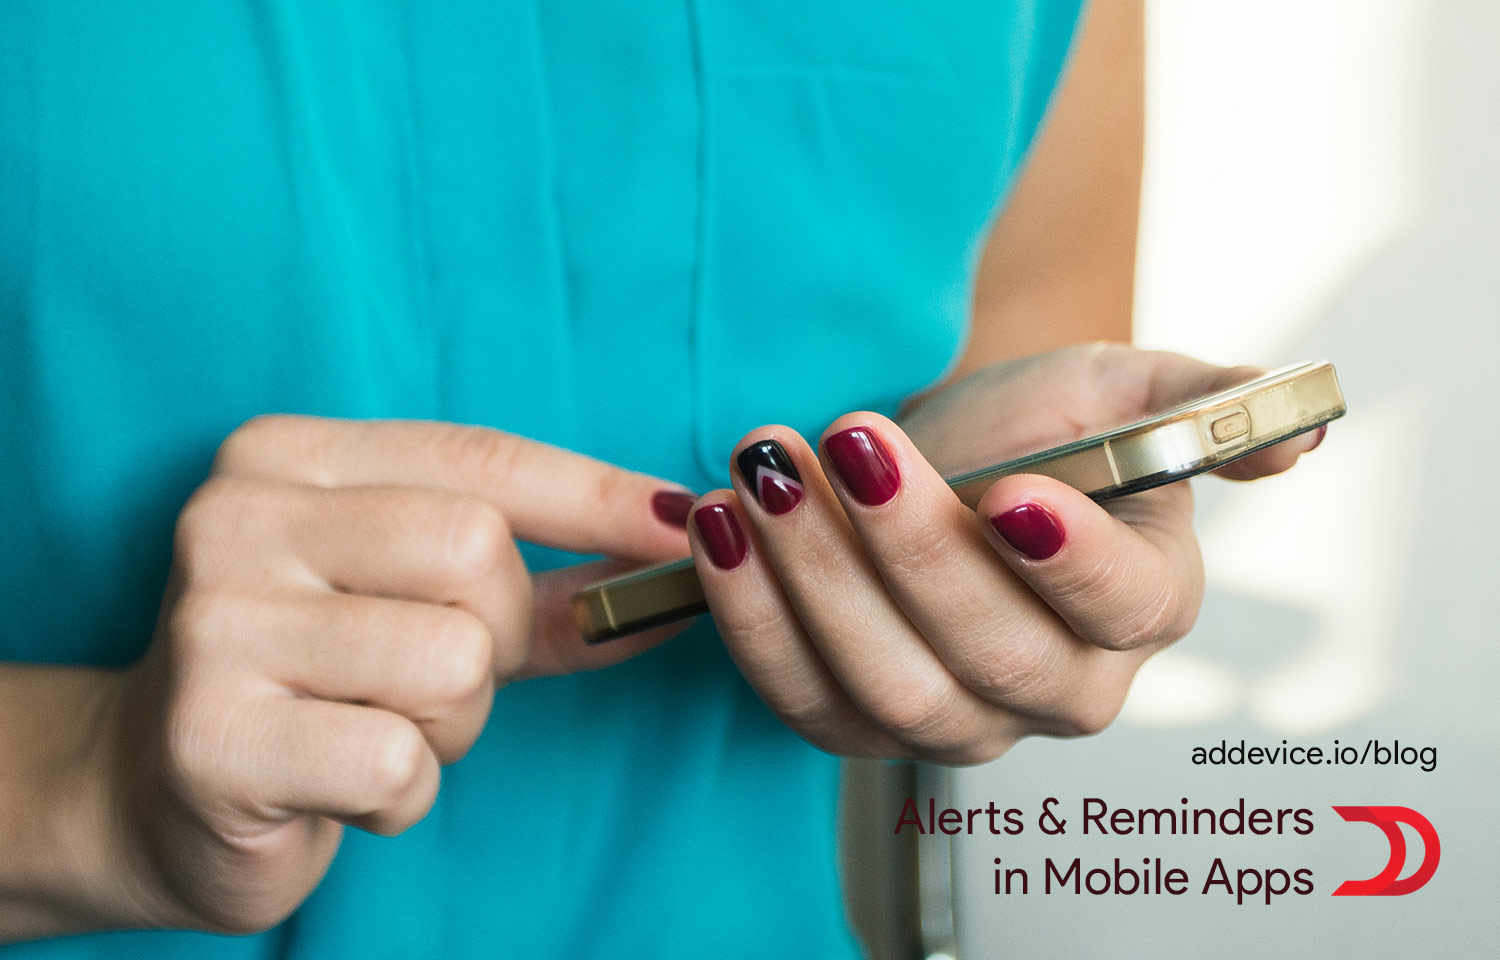 Alerts & reminders in mobile apps